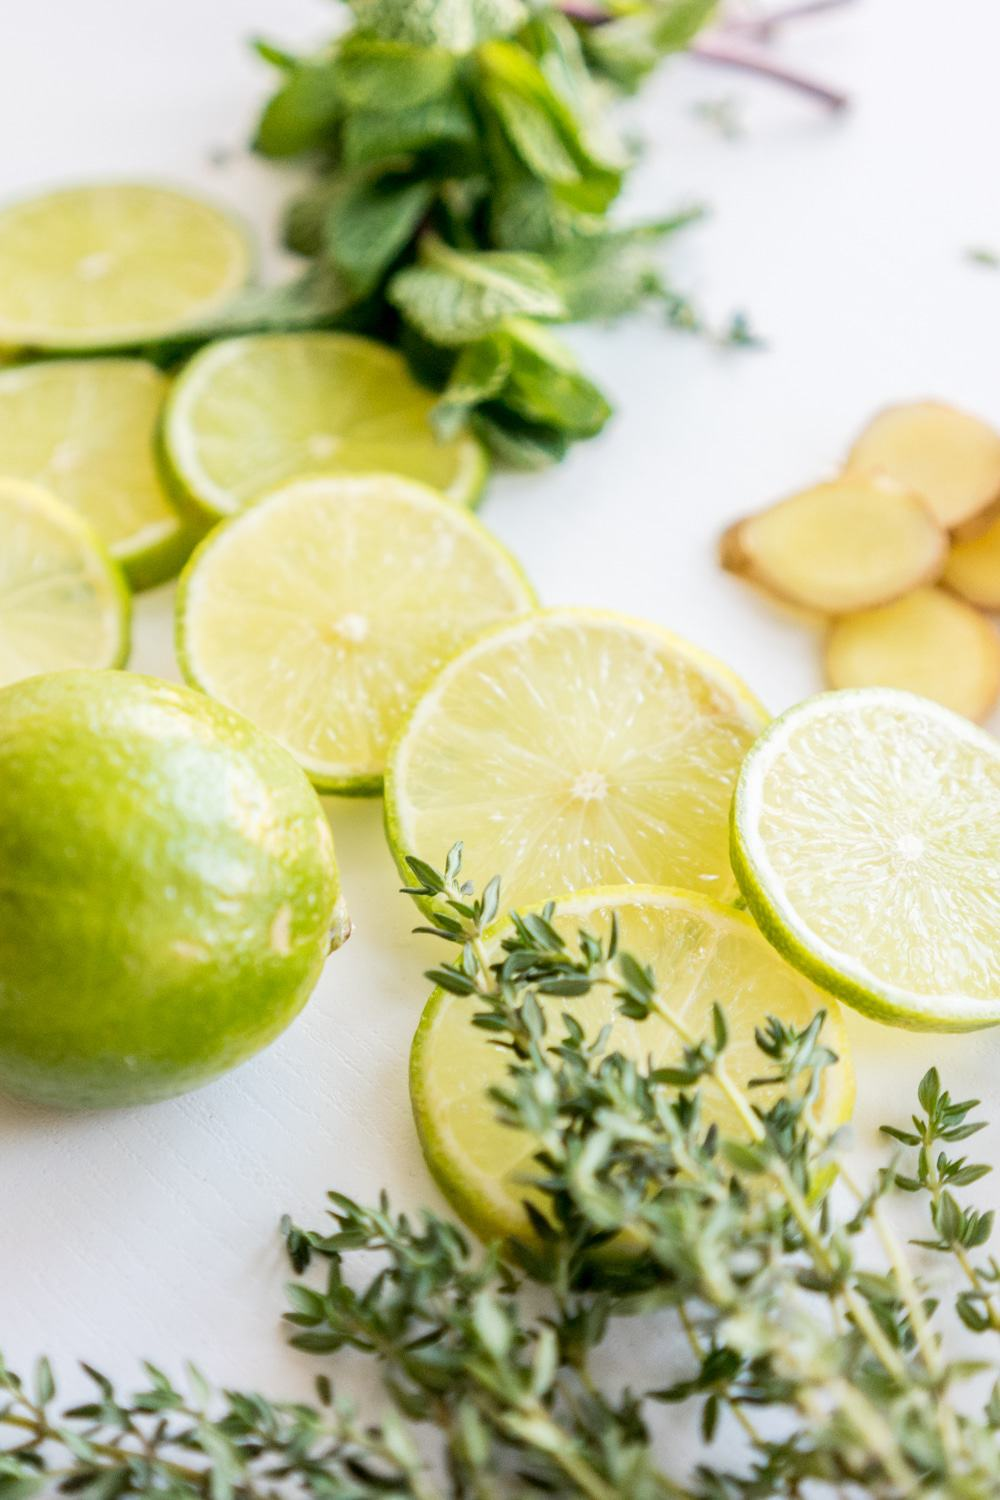 Lime, Mint, Ginger And Thyme Stove Top Potpourri | These Stove Top Potpourri ideas create an amazing natural homemade scent that will bring the smell of spring into your home. Such easy recipes that you can leave on your stove all day long simmering. Each one will fill your home with a fresh aroma as you do your spring cleaning!